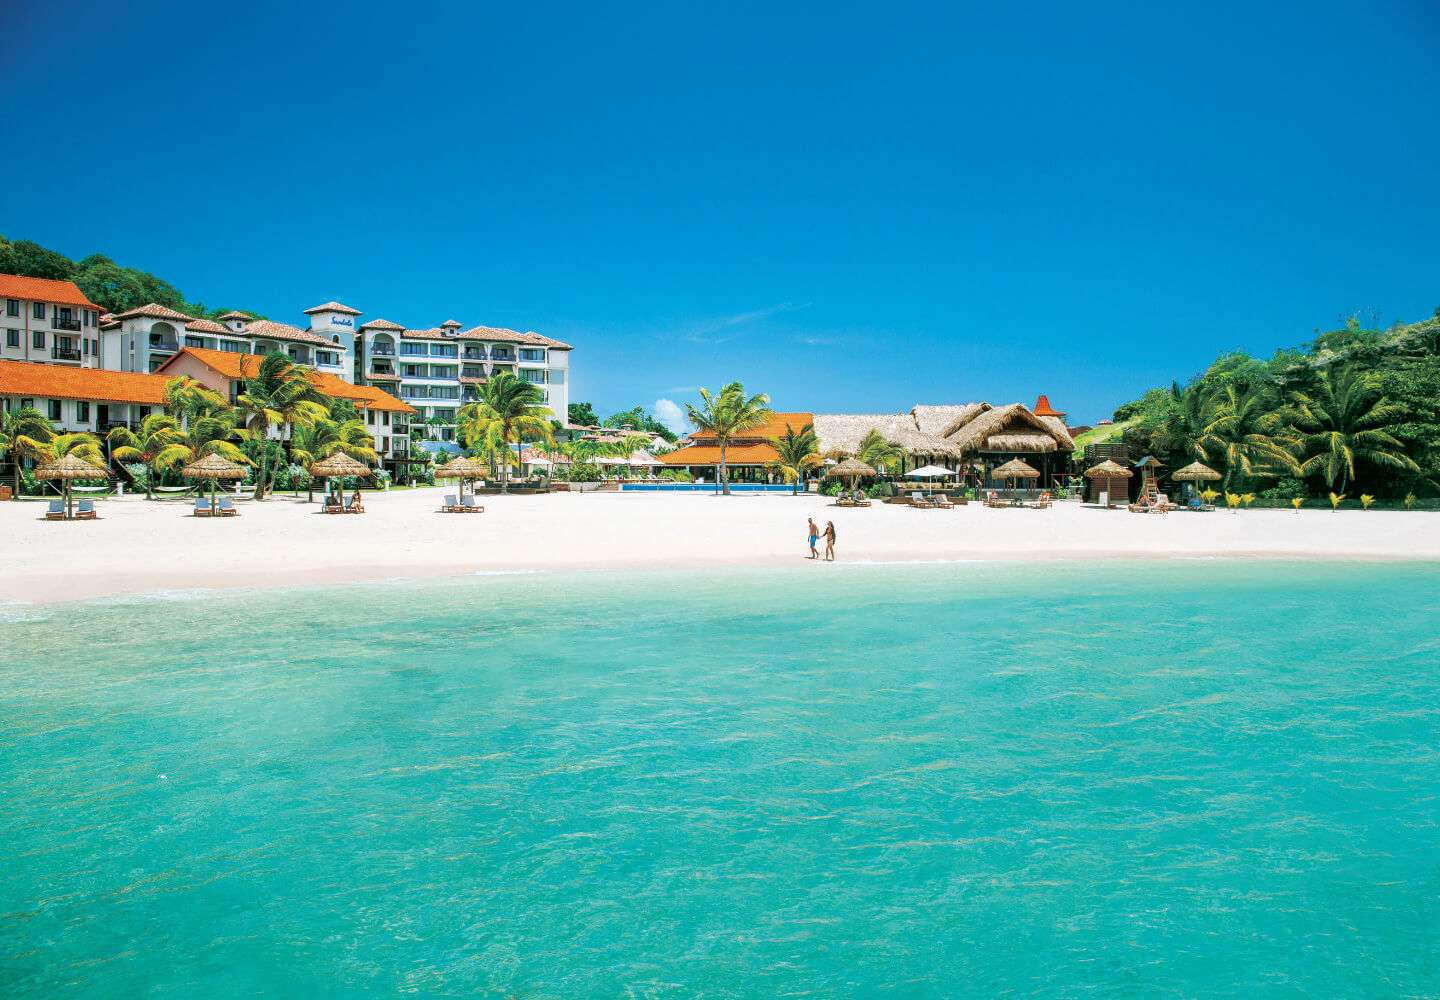 Sandals LaSource Grenada Resort & Spa, Saint George's